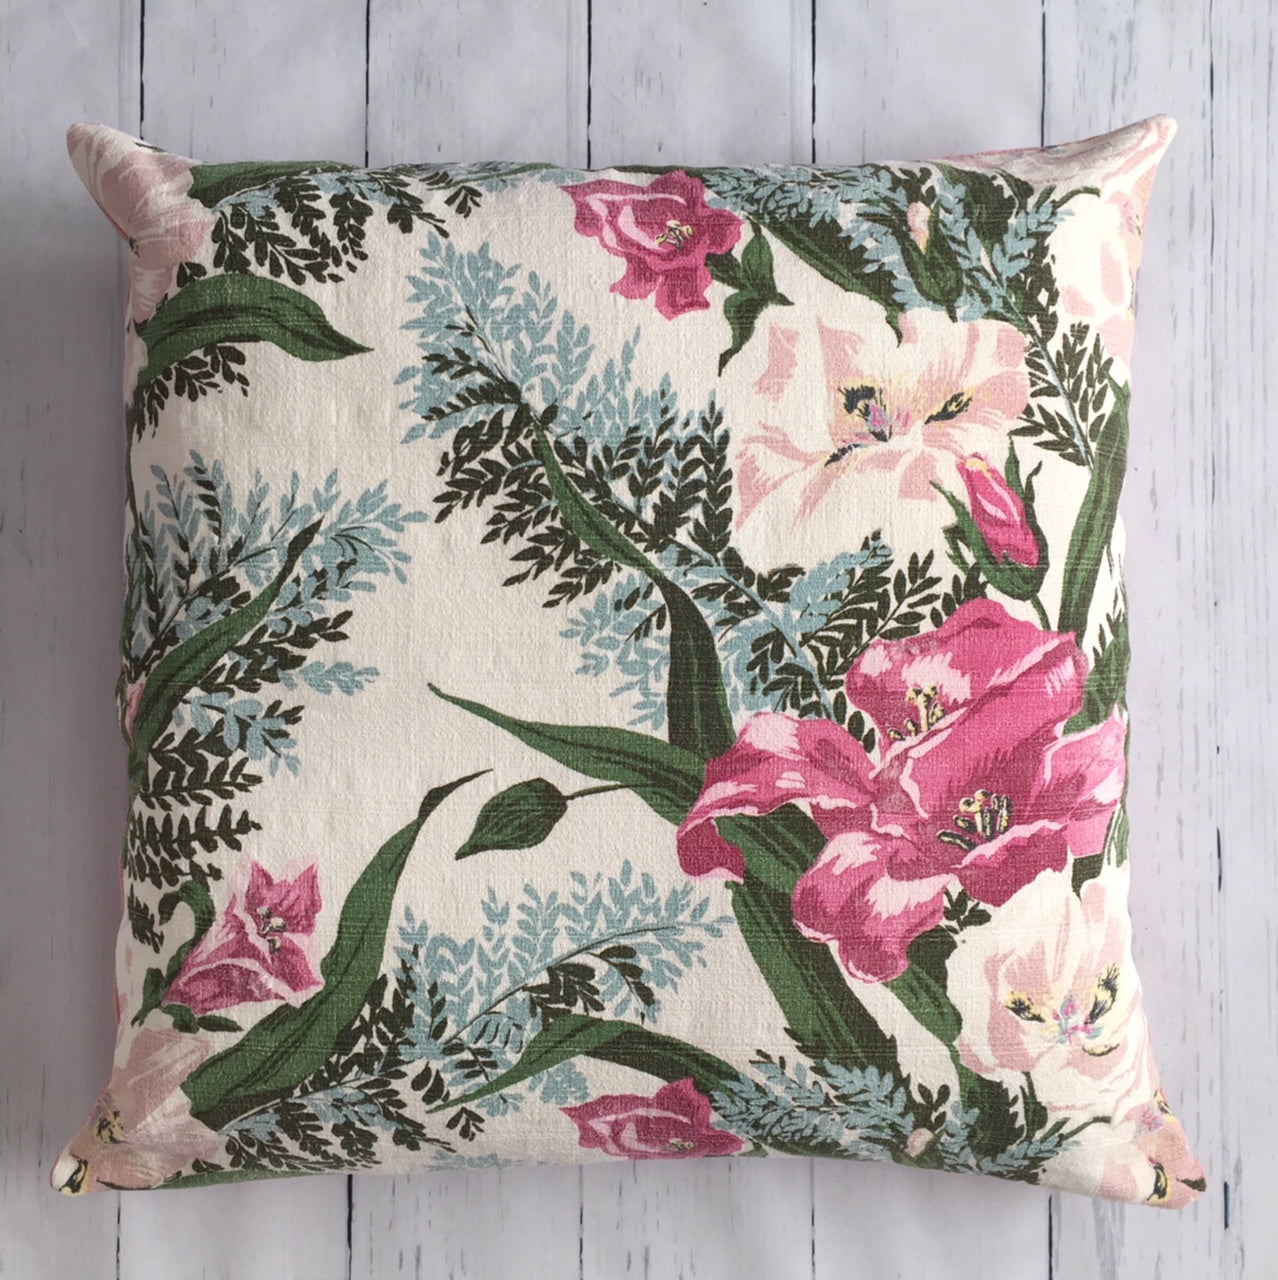 eco-friendly-sustainable-repurposed-handmade-floor-pillow-vintage-floral-fern-square-floor-pillow-front-hilary-hope